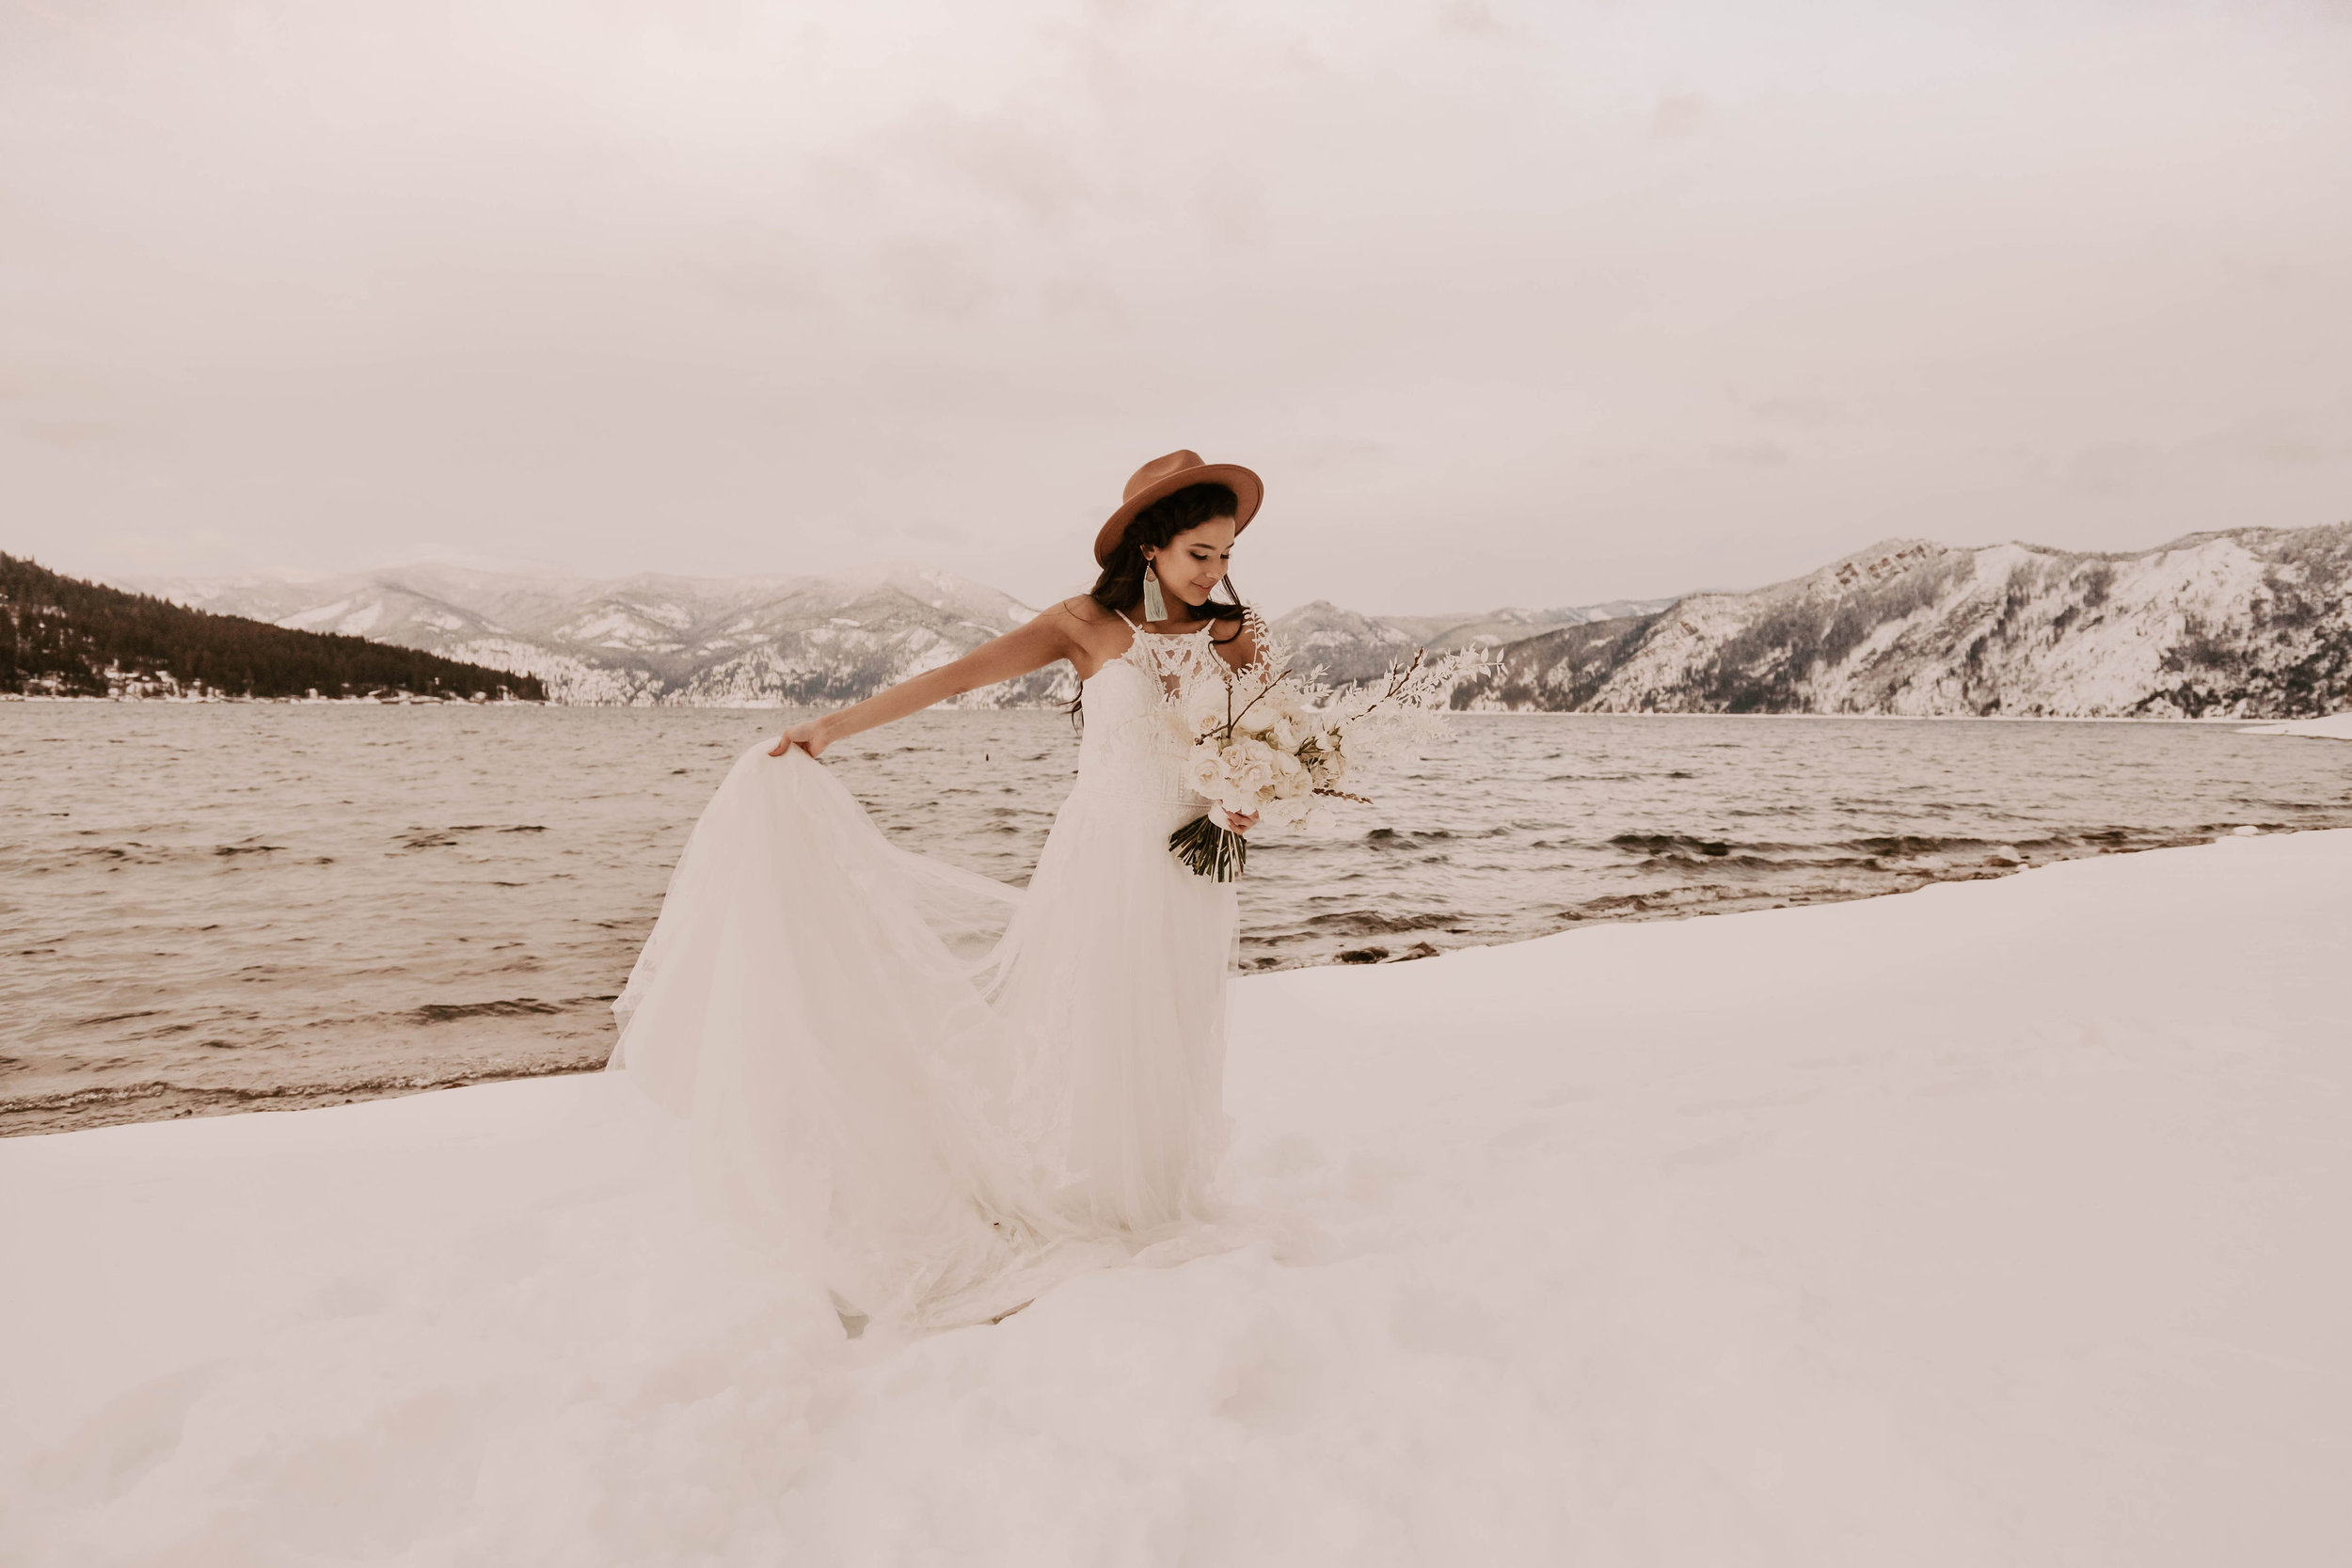 winter wedding dress bride spokane idaho